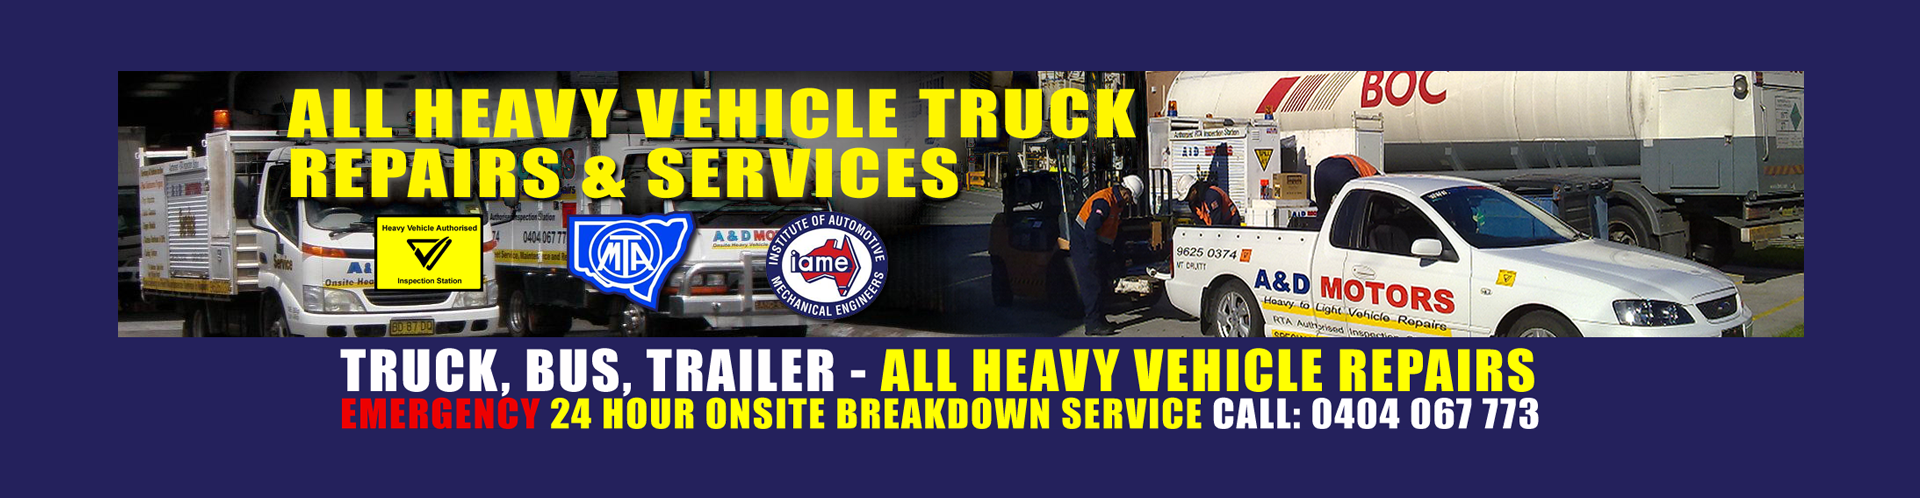 After Hours Truck Repairs Sydney